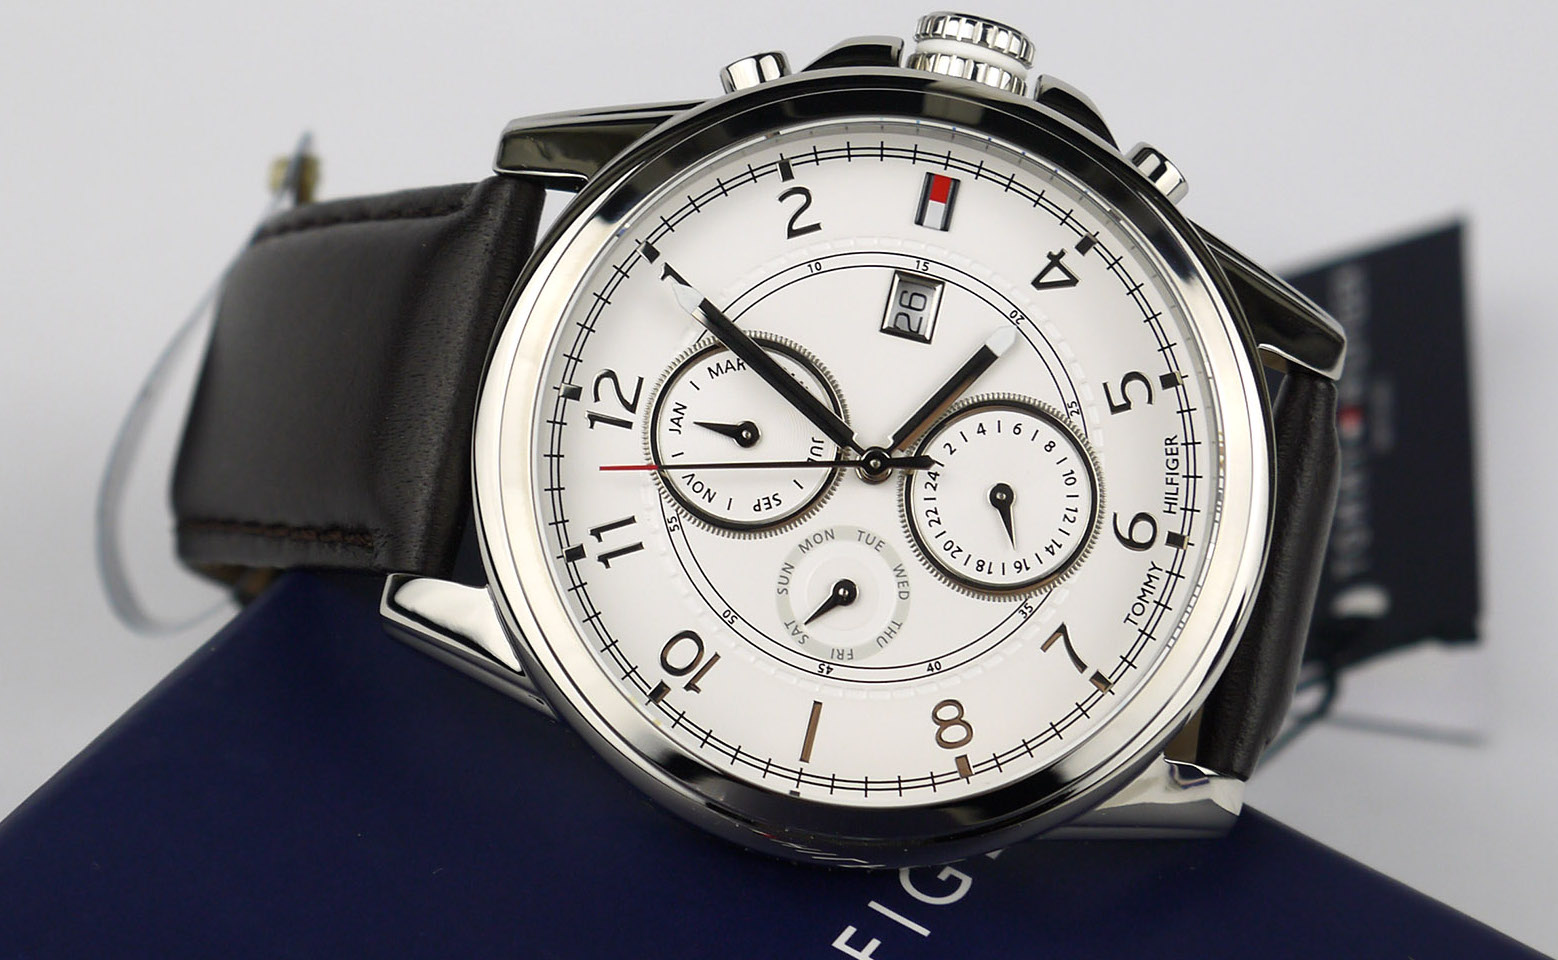 d3a803678b Tommy Hilfiger 1710294 Stainless Steel Watch Review - WatchReviewBlog